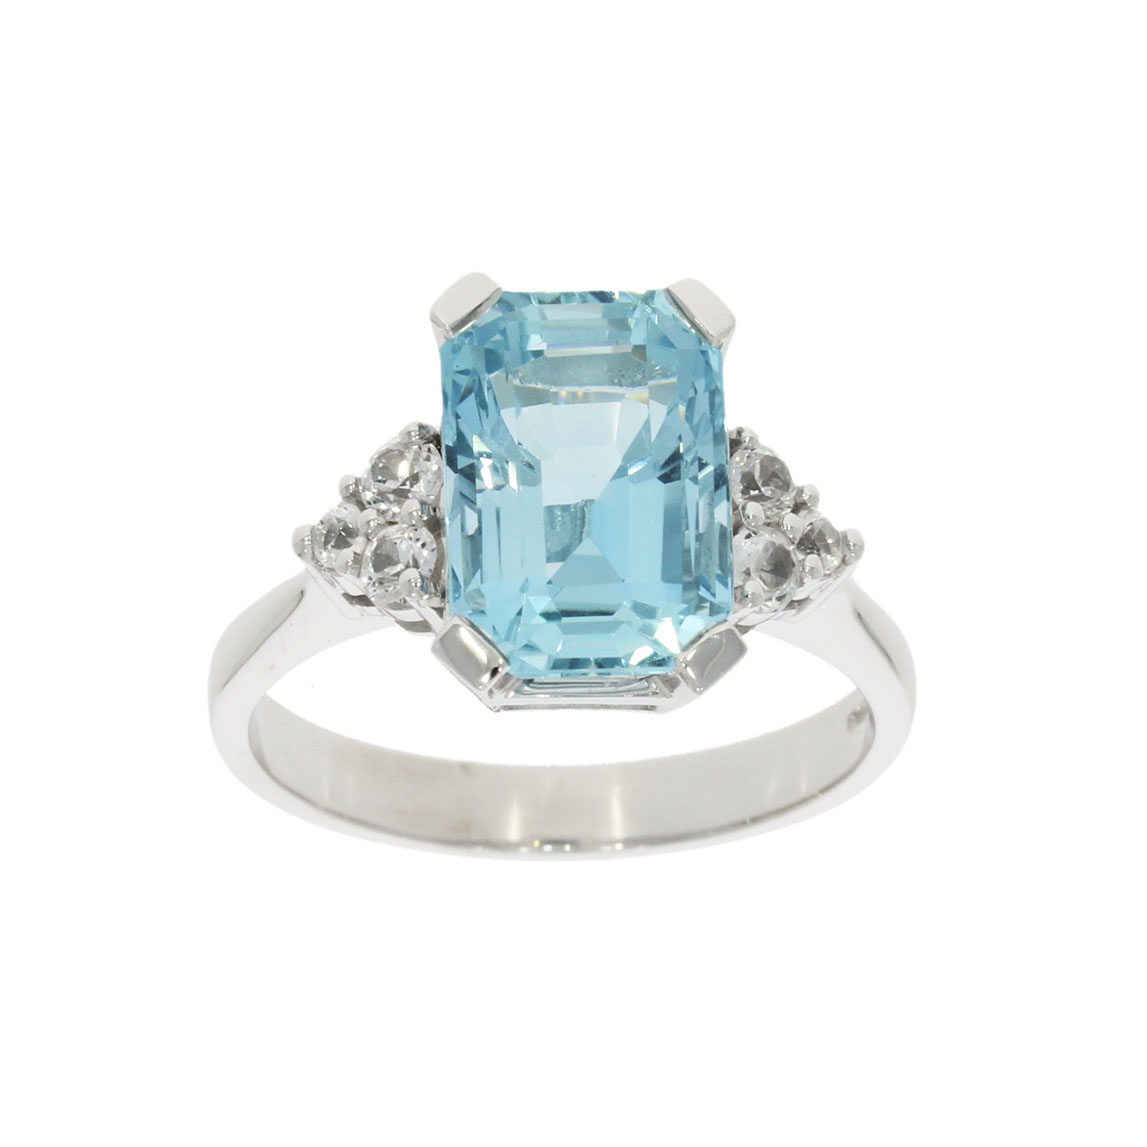 aqua aquamarine white topaz diamond cocktail engagement ring wylde bath bristol uk